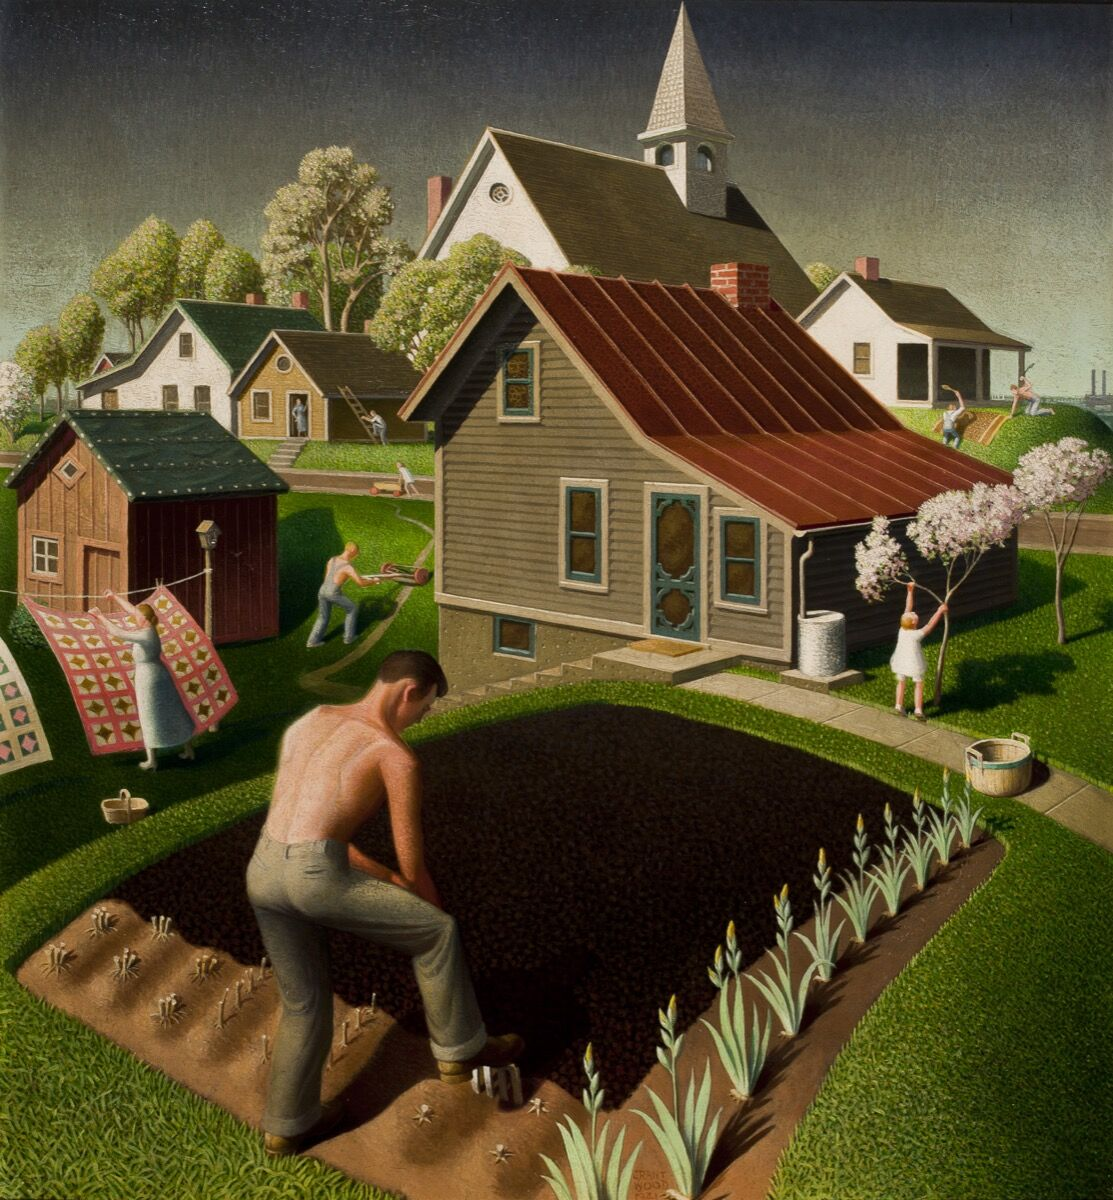 Grant Wood, Spring in Town, 1941. Swope Art Museum, Terre Haute, Indiana. © Figge Art Museum, successors to the Estate of Nan Wood Graham/Licensed by VAGA, New York, NY.